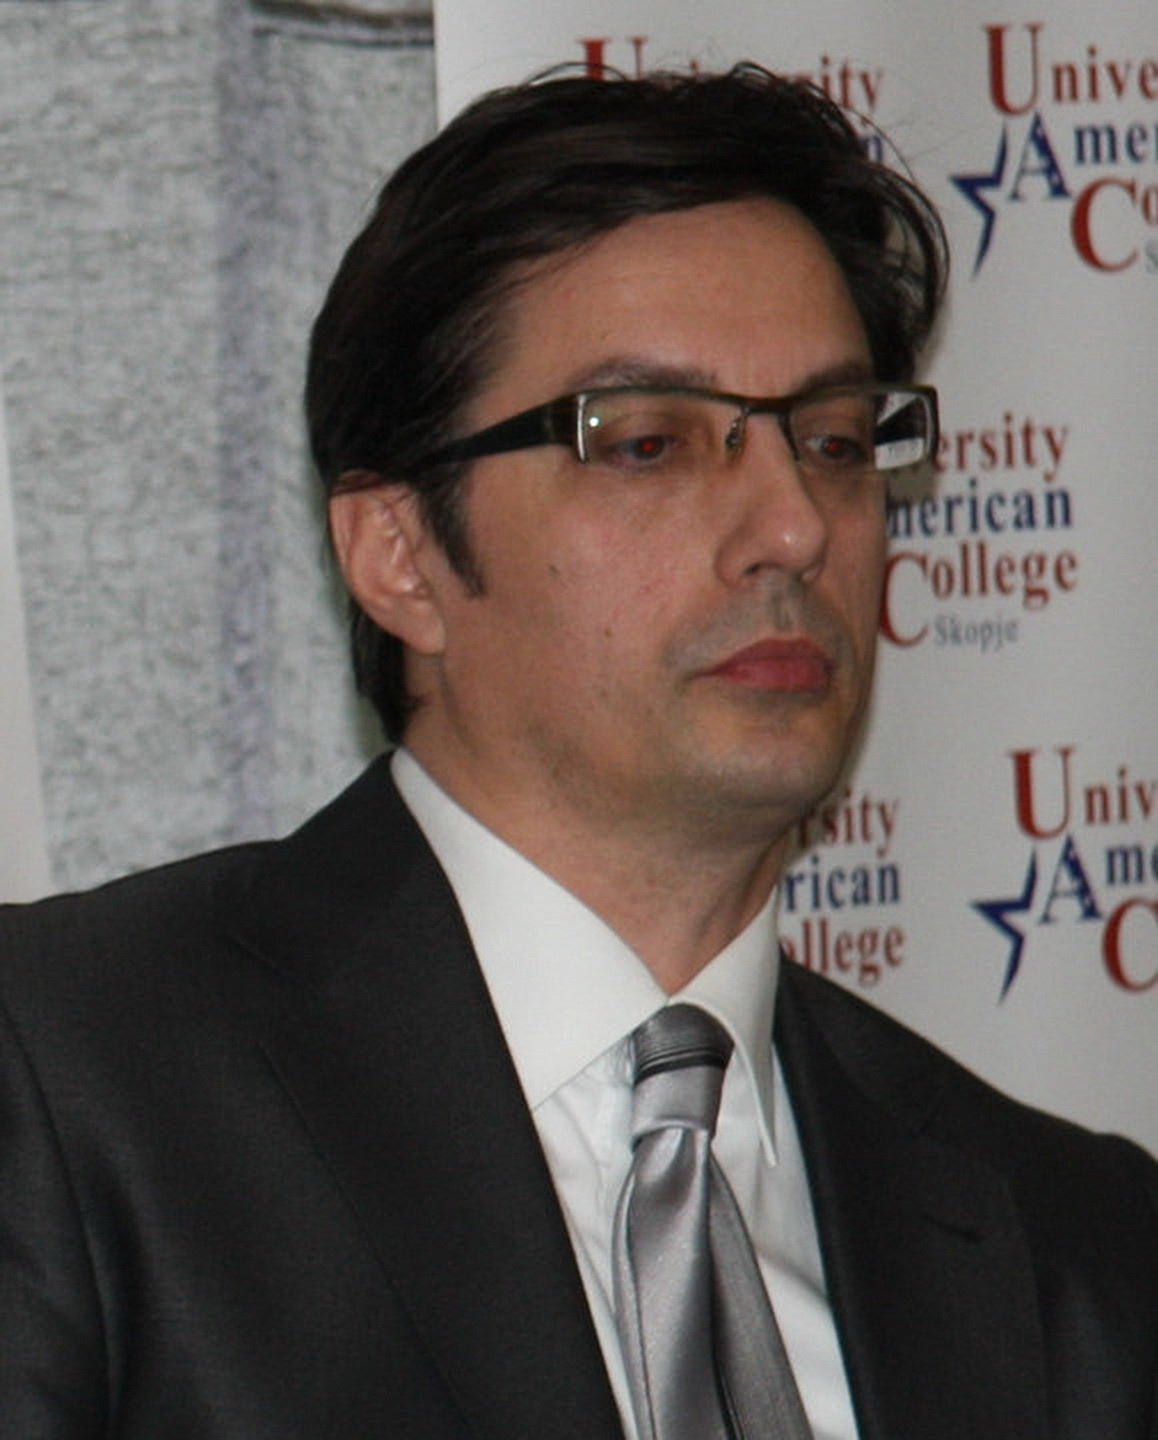 http://www.uacs.edu.mk/userfiles/images/Profesori%20-%20sliki/Faculty%20and%20Staff%20-%20sliki/Stevo%20Pendarovski.jpg